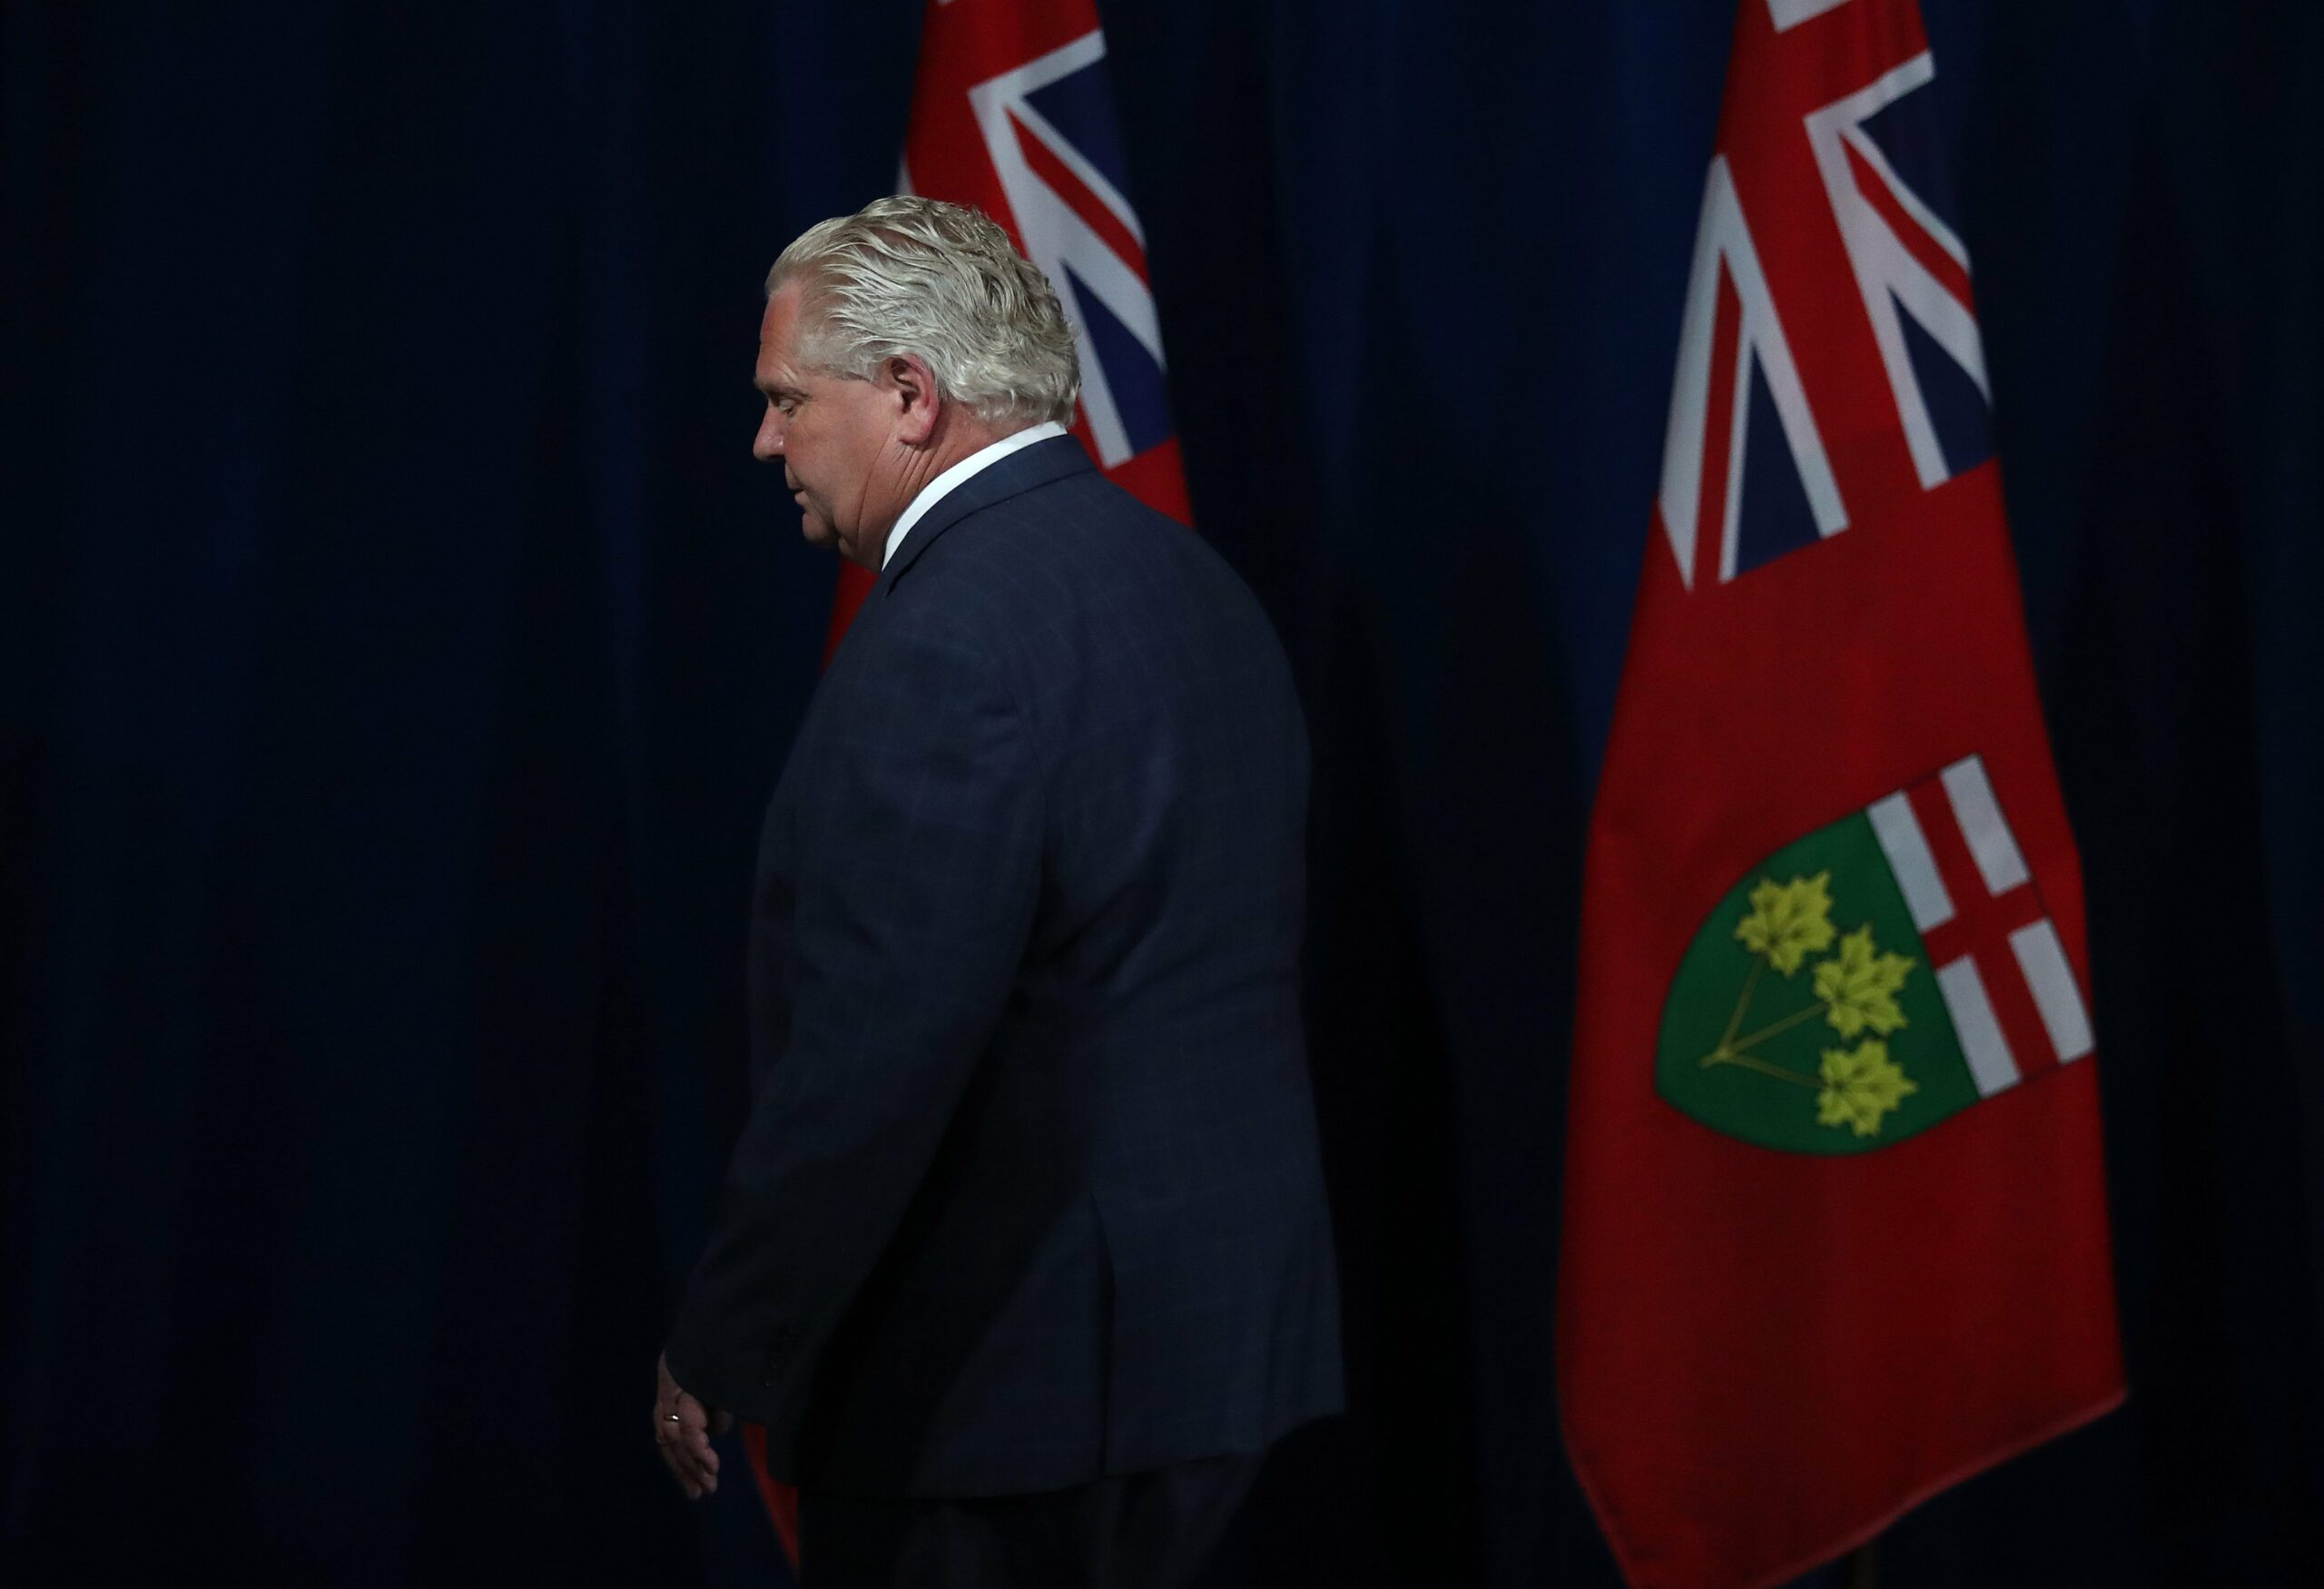 Consensus emerges on paid sick days as PCs call on feds to step up